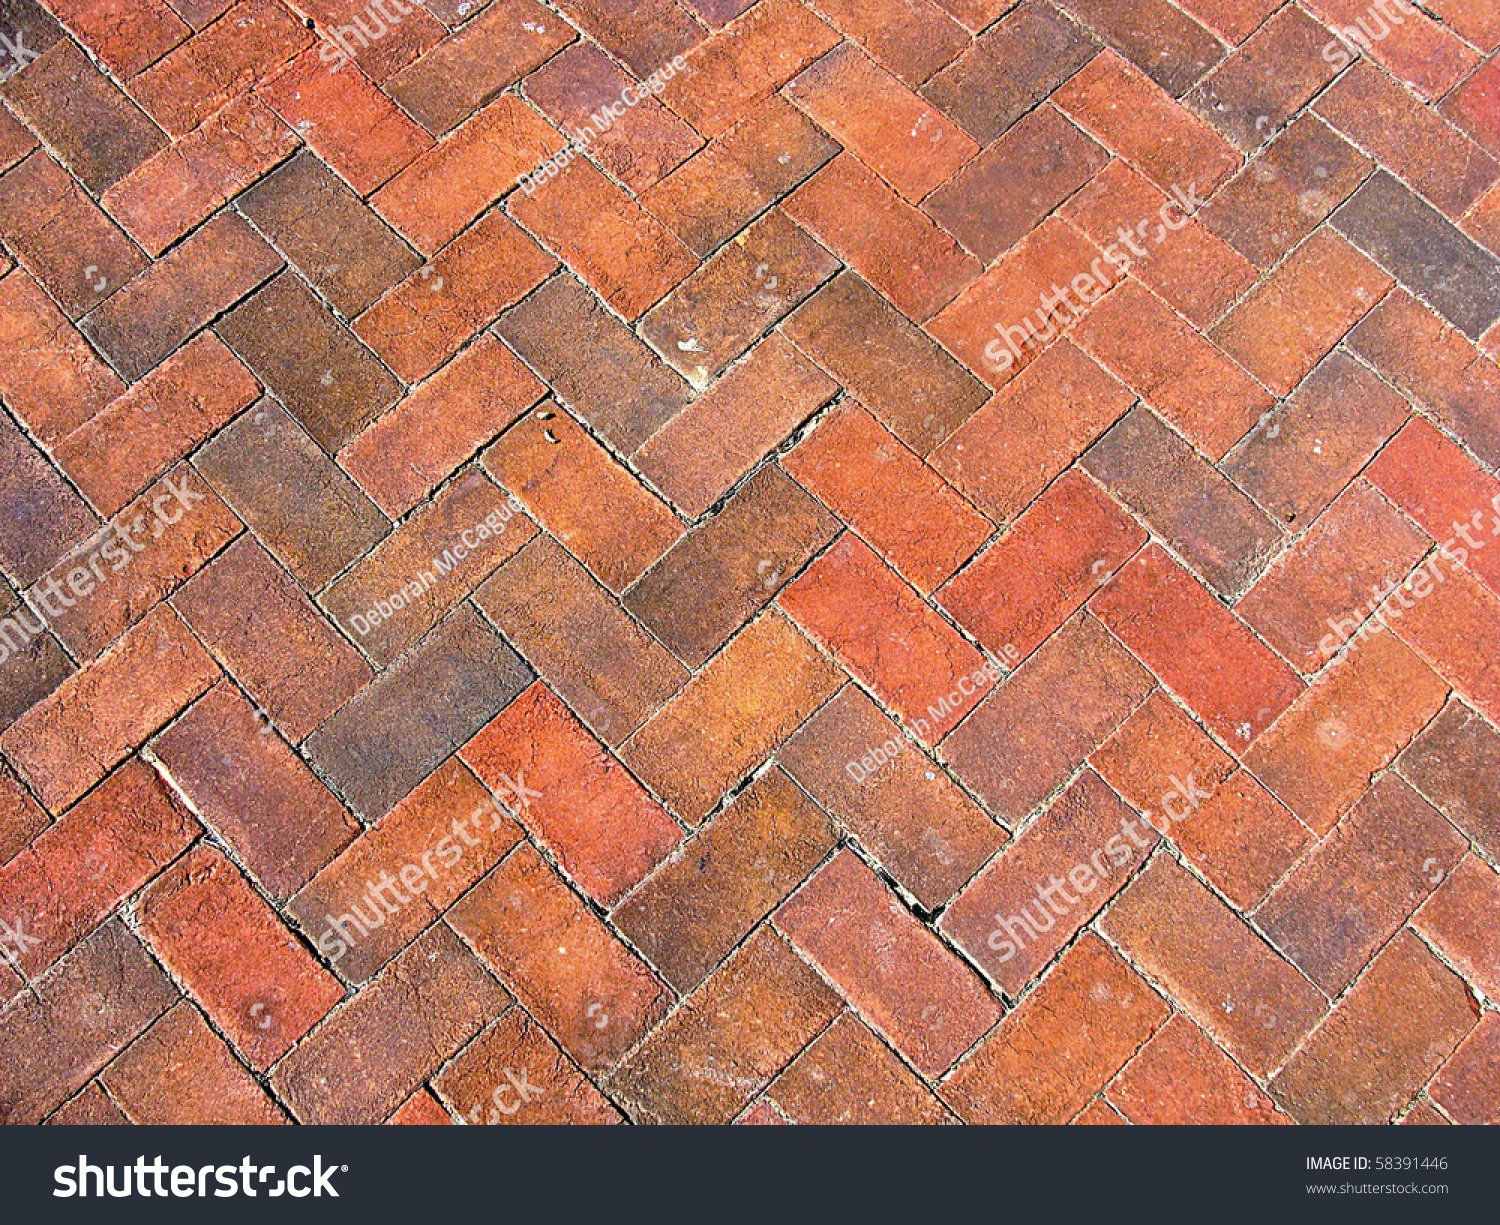 Red Paving Stones : Red brick paving stones on a sidewalk stock photo